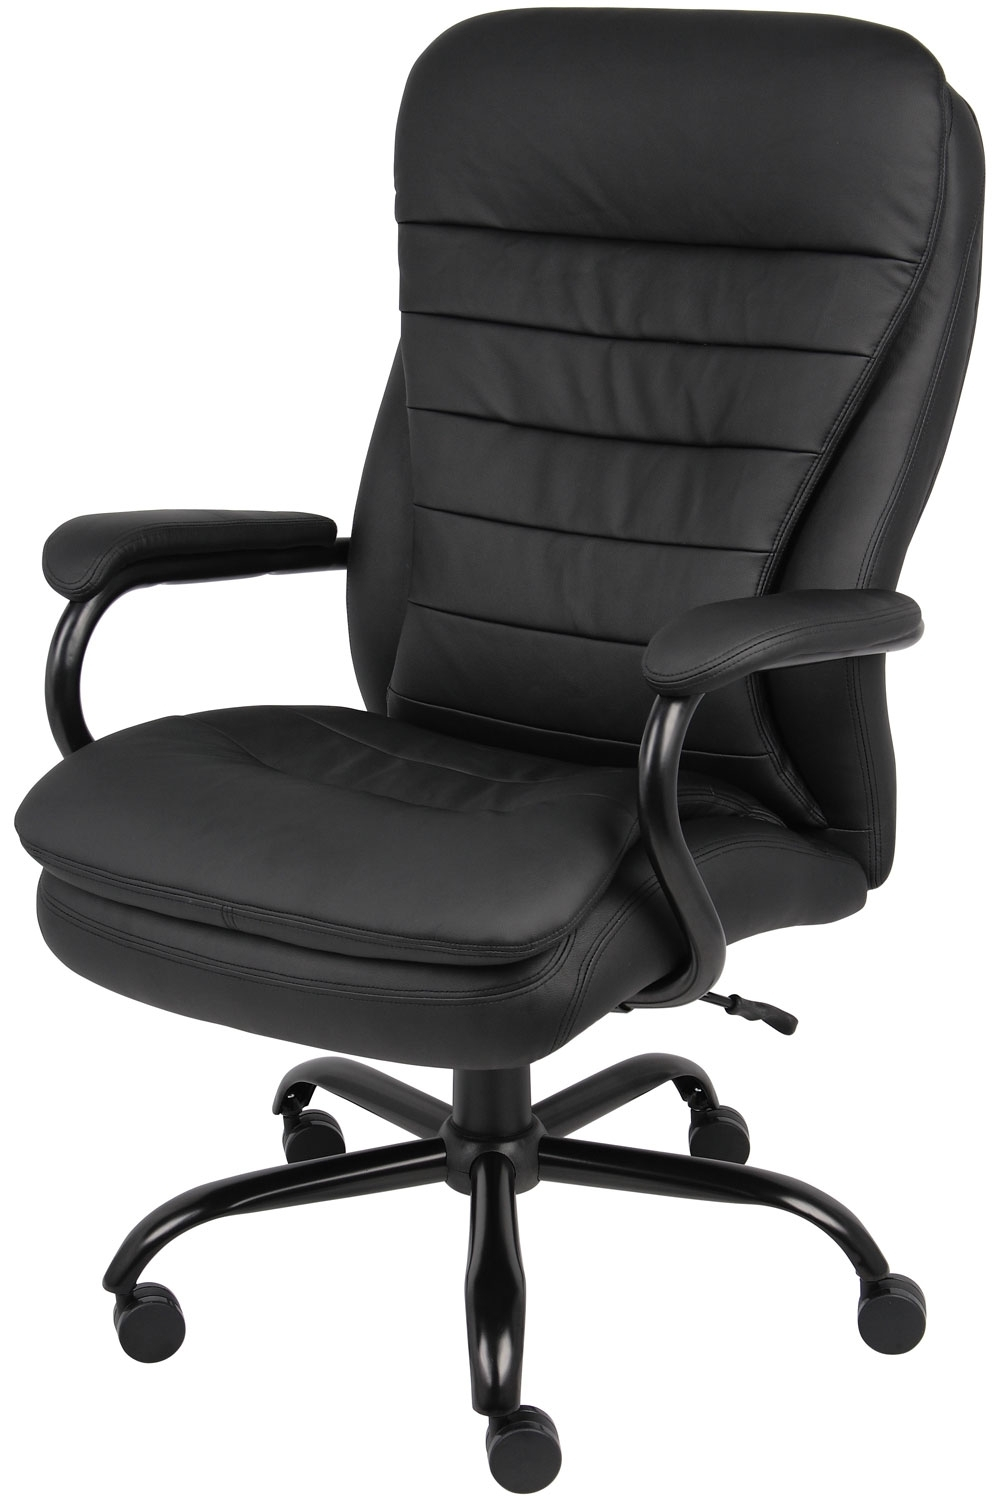 Widely Used Big And Tall Executive Office Chairs Regarding B991 Cp Big And Tall Executive Office Chair In Caresoft Vinyl (View 19 of 20)